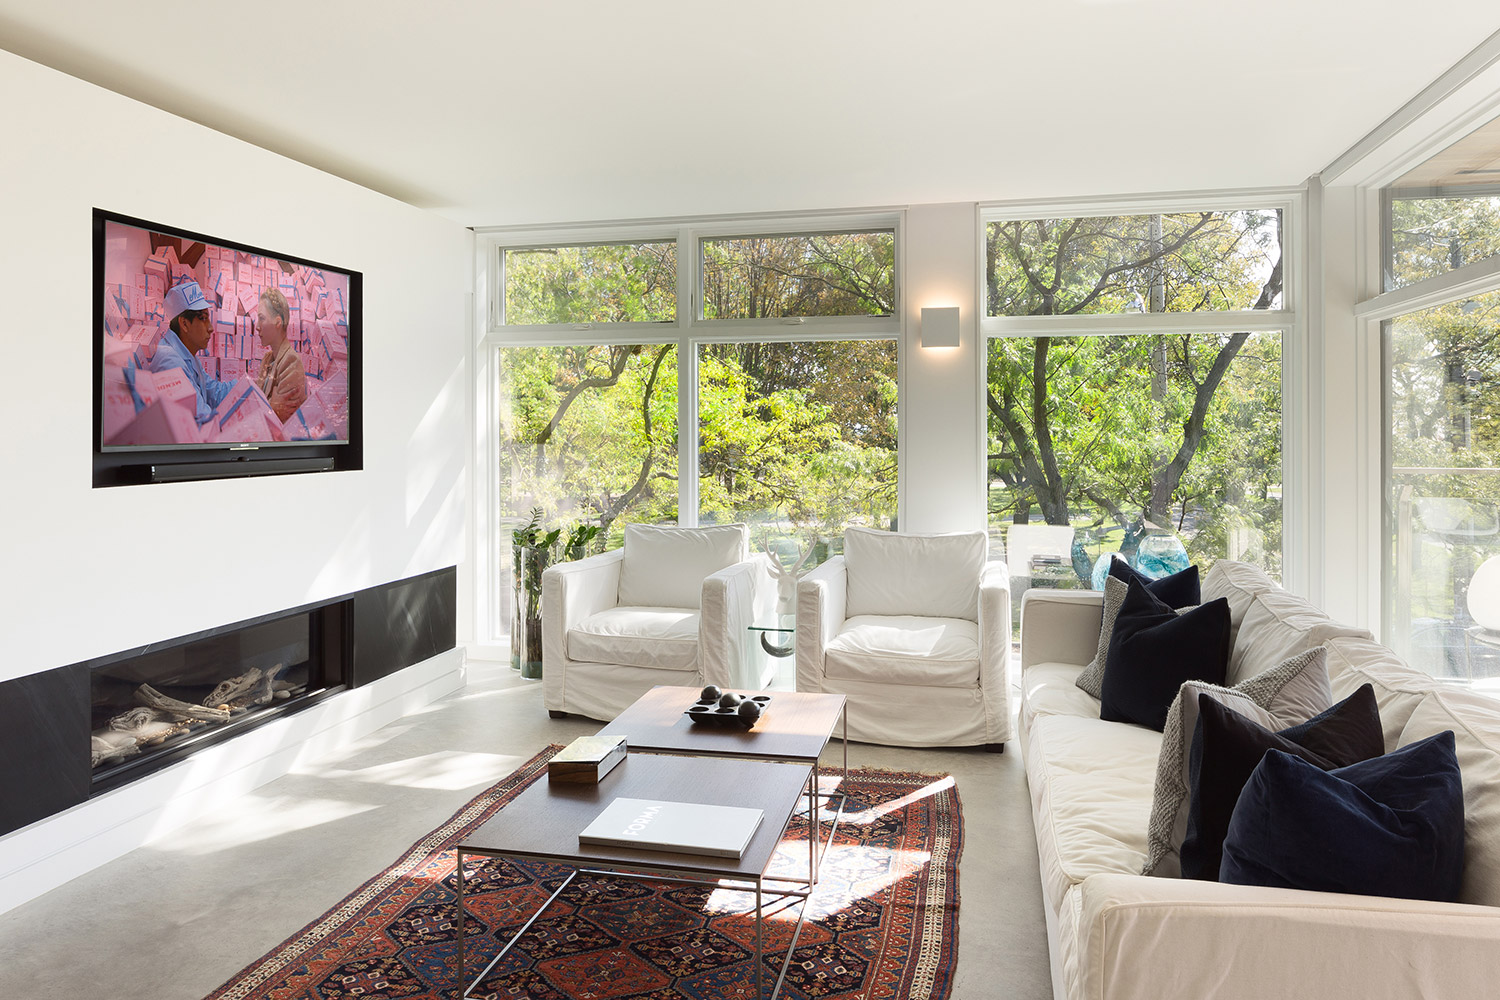 Second floor living room with ribbon fireplace and floor-to-ceiling windows with white couch and chairs